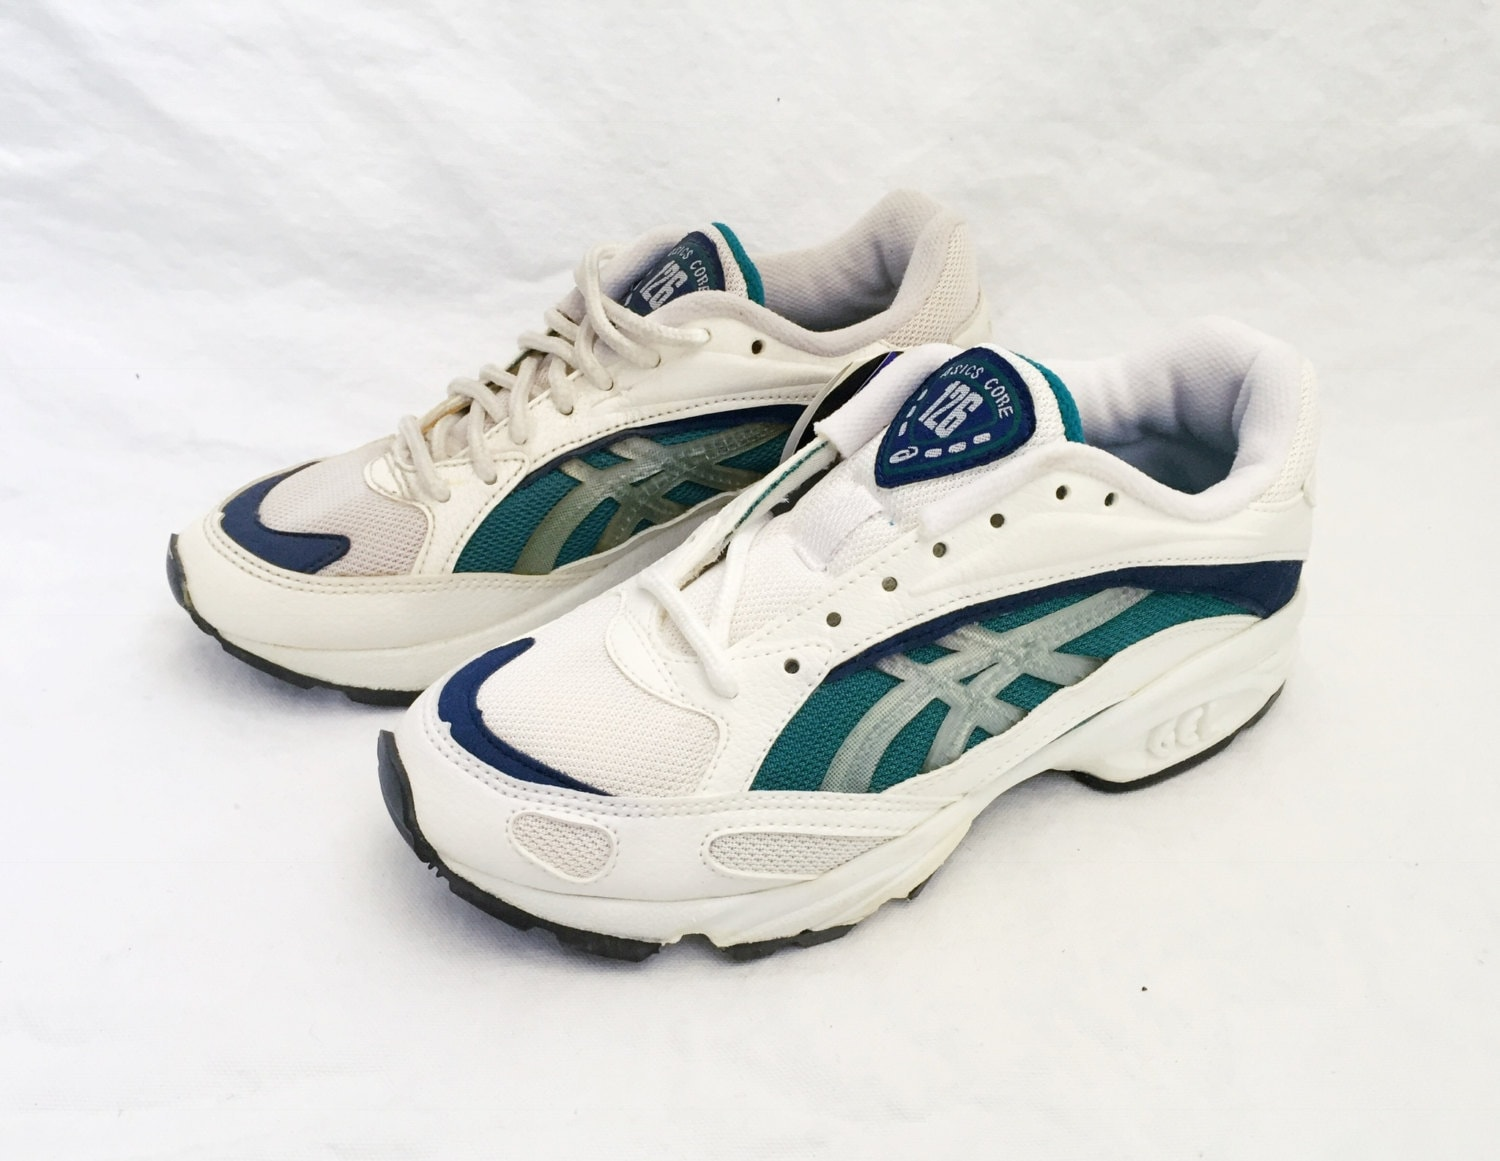 Description. 1996 Asics sneakers.